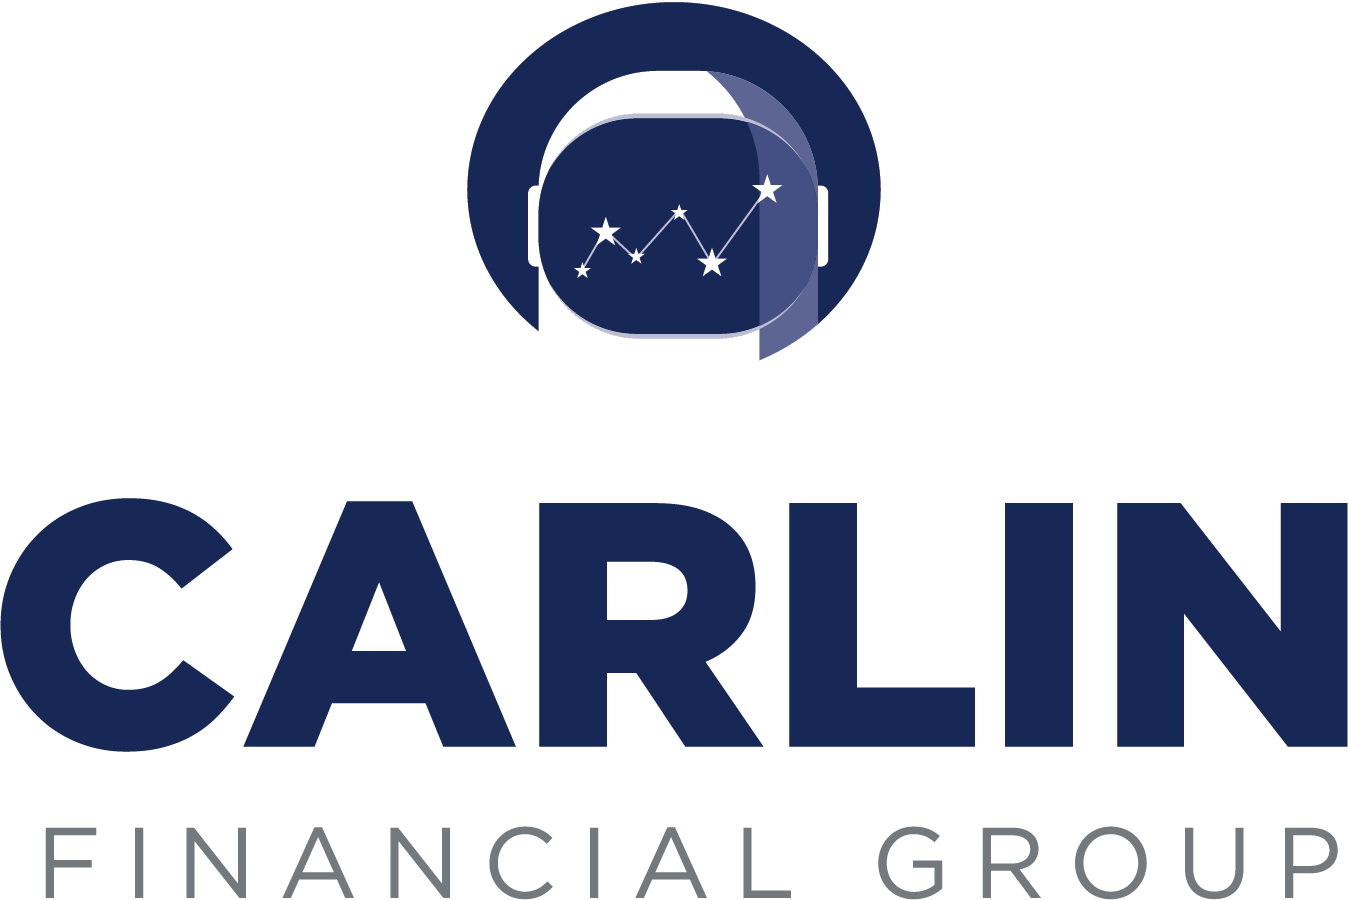 CARLIN FINANCIAL GROUP_LOGO_ConceptB_AMS_07.28.20